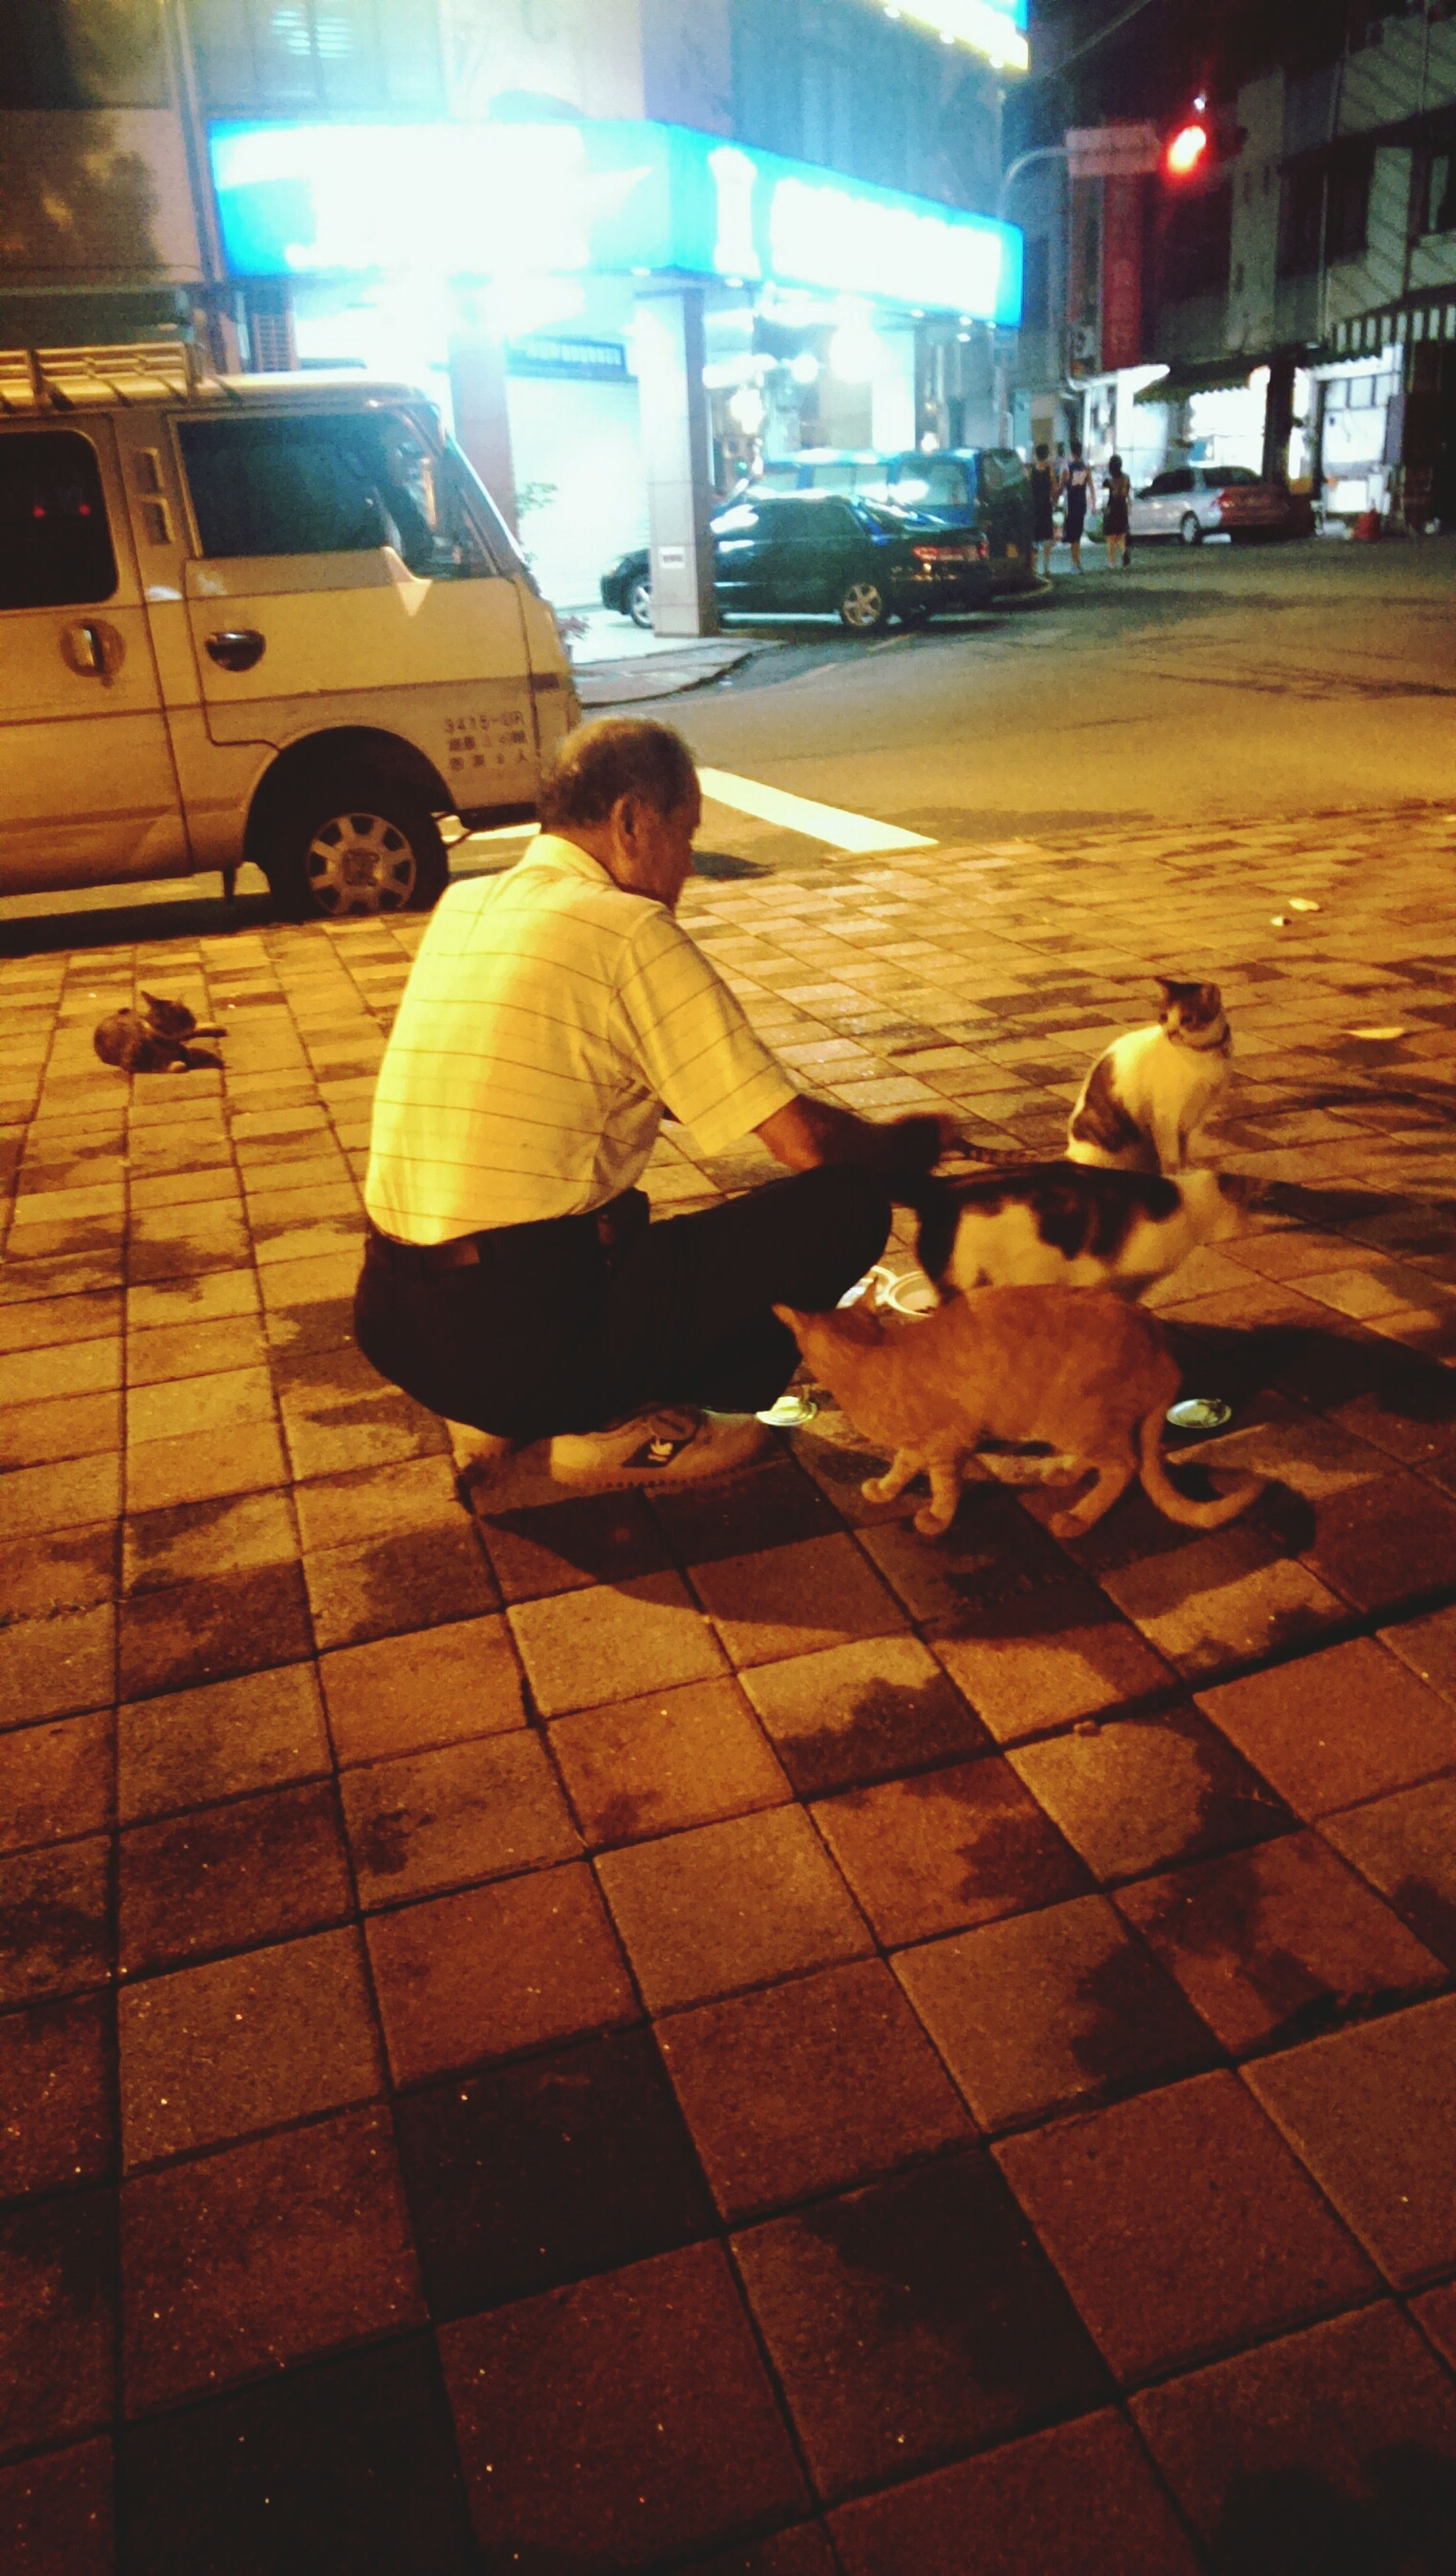 street, full length, animal themes, lifestyles, night, leisure activity, sidewalk, pets, cobblestone, building exterior, men, person, walking, dog, incidental people, paving stone, rear view, casual clothing